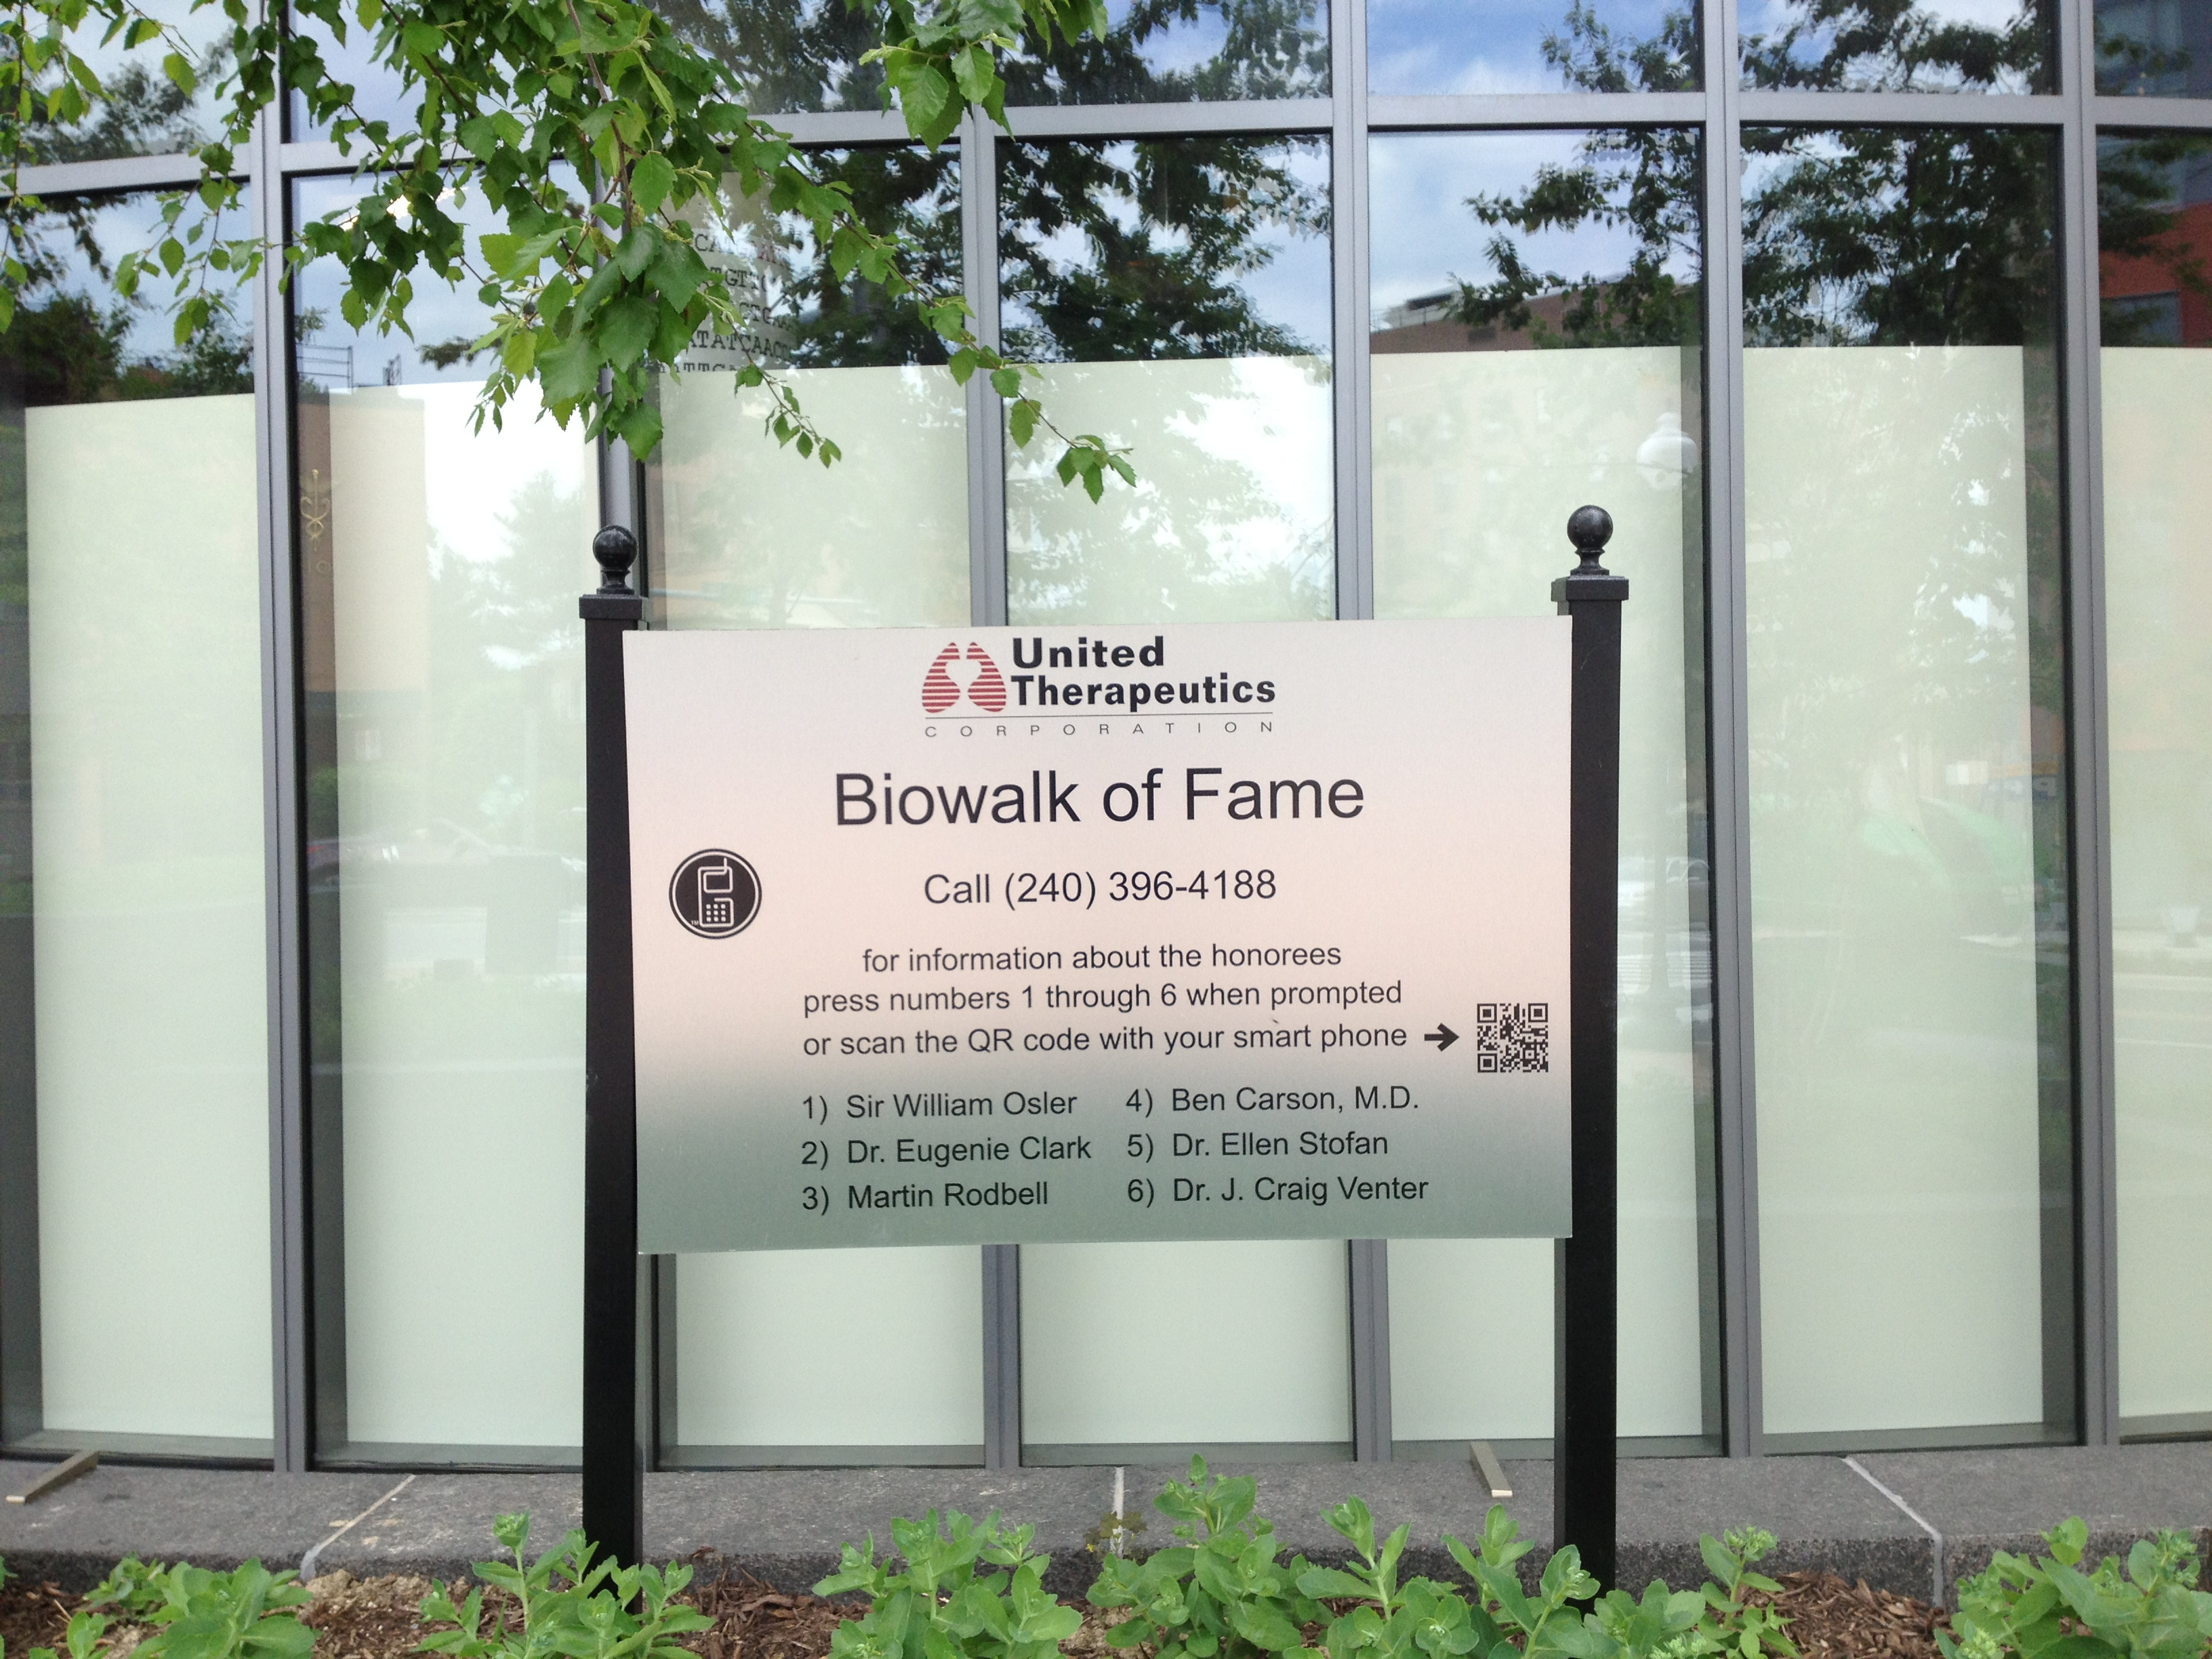 Biowalk of Fame tour sign